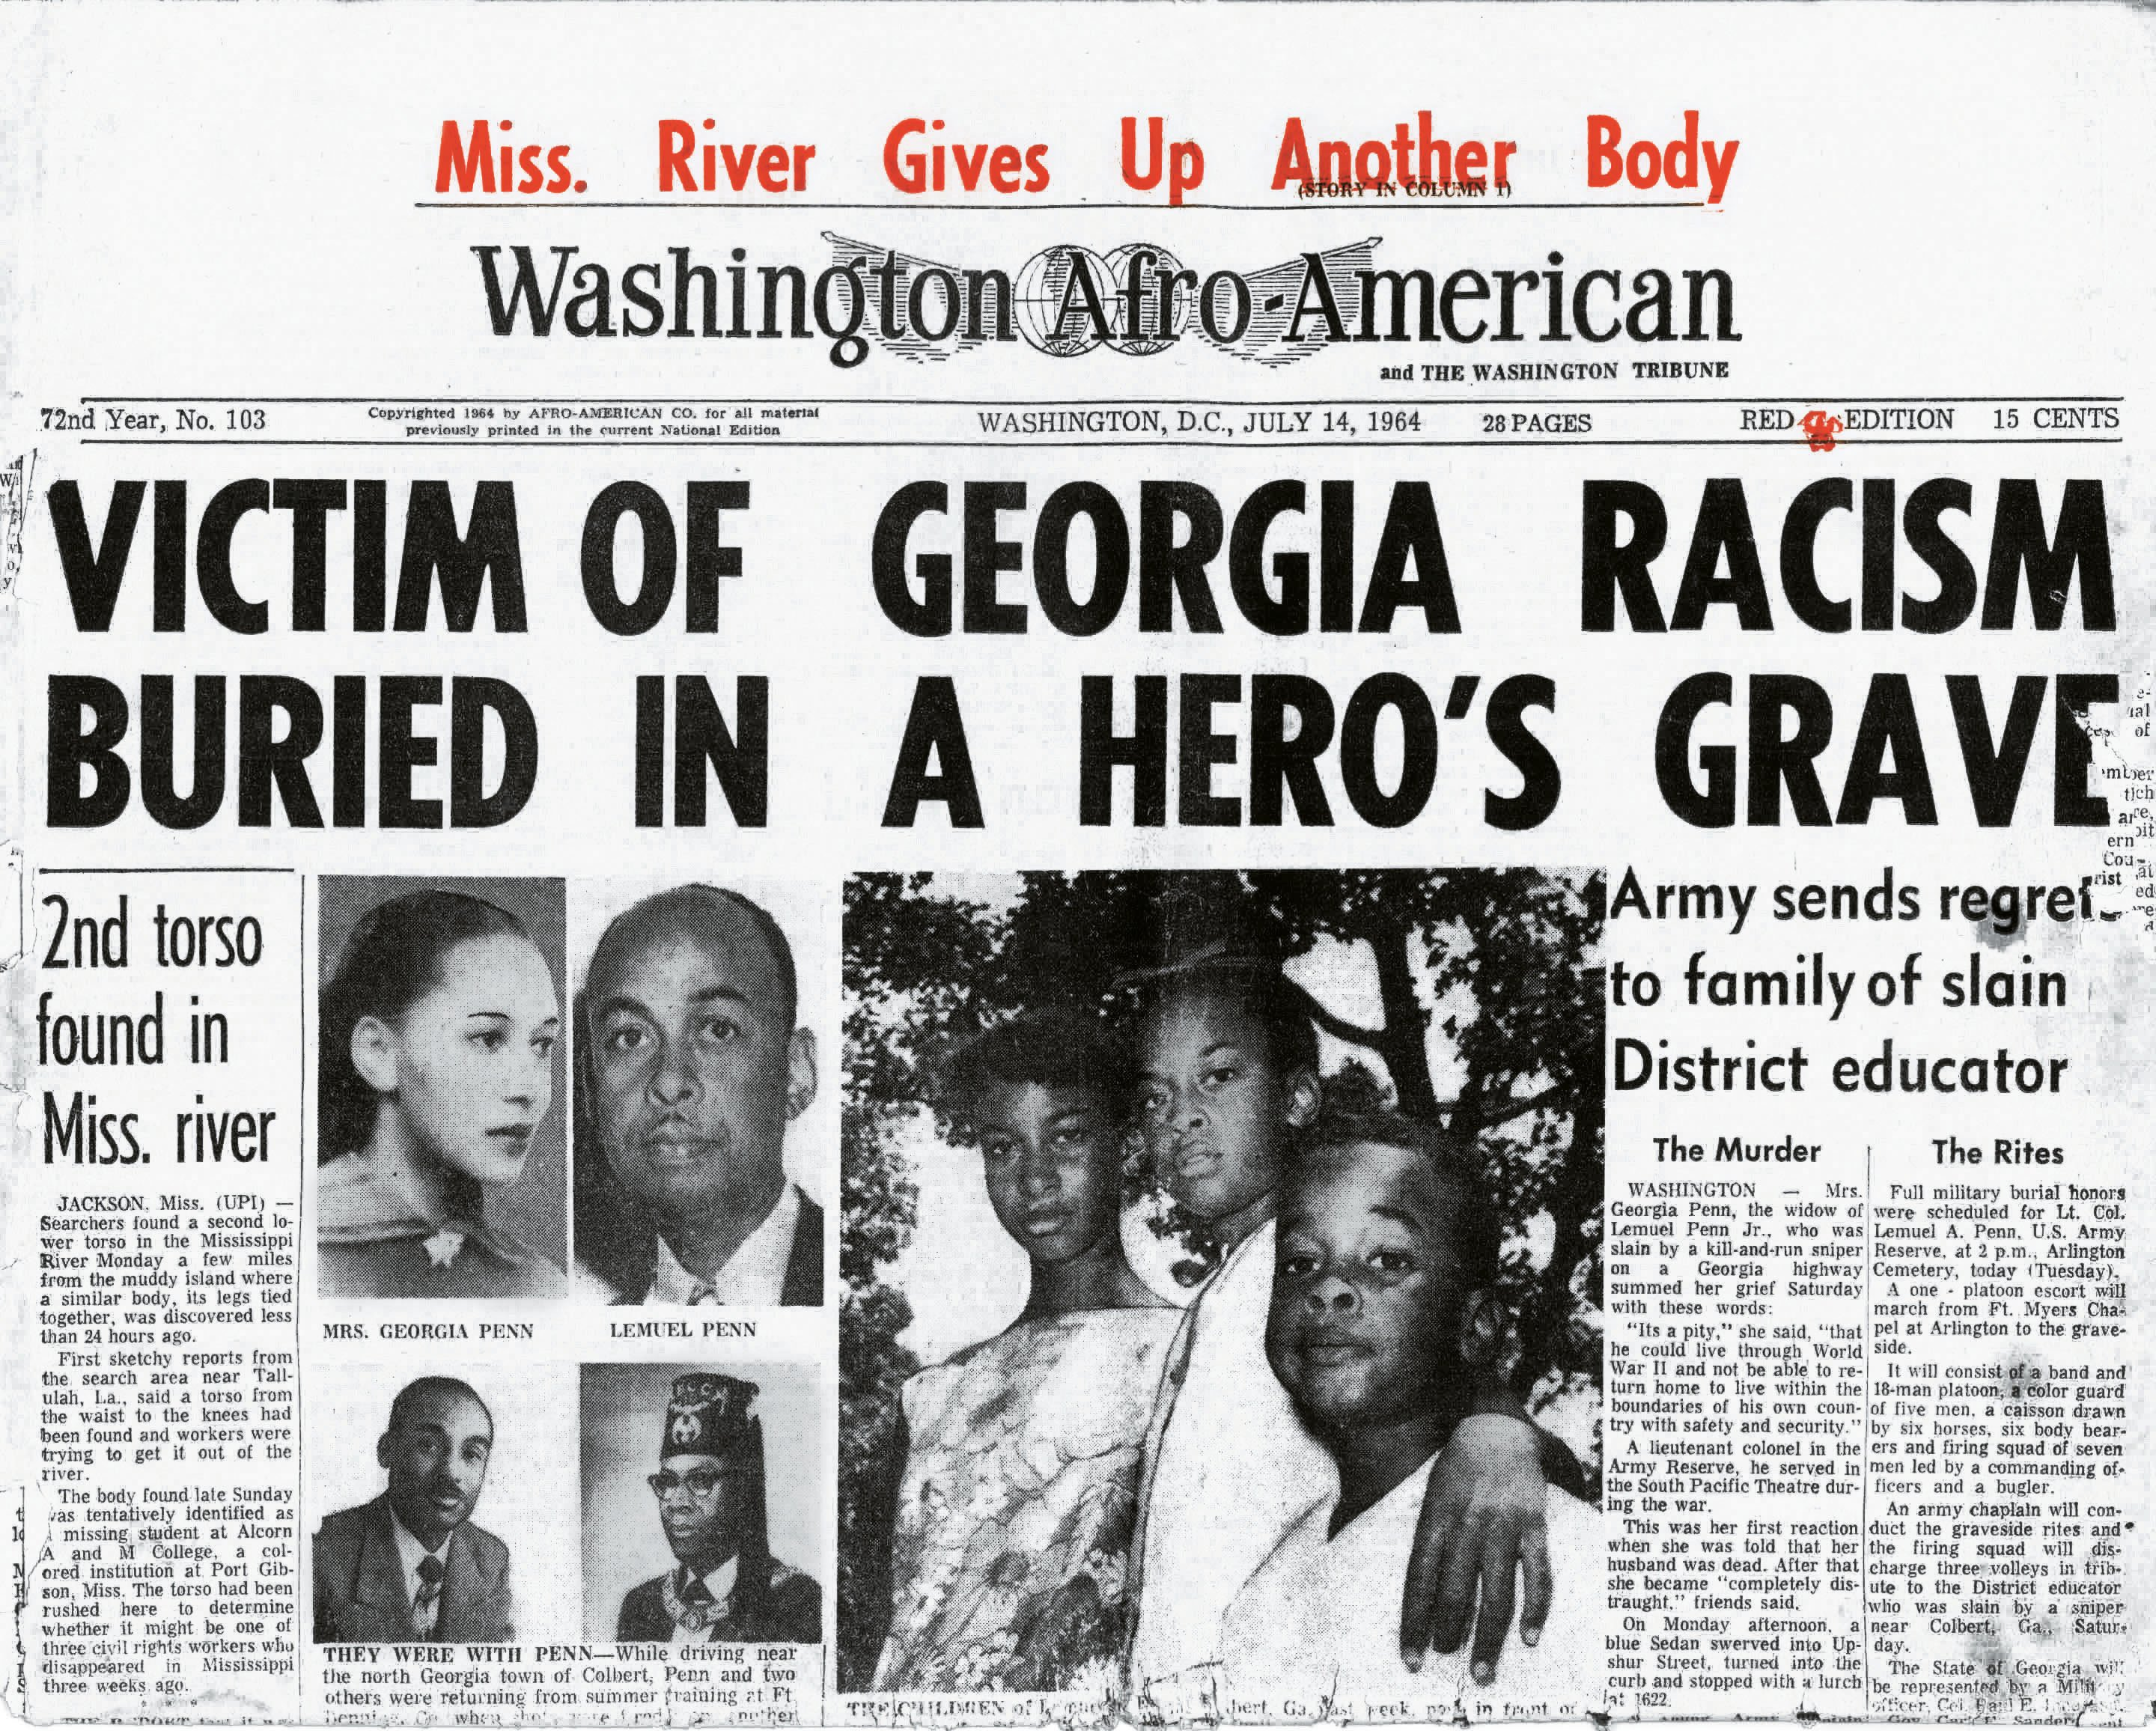 The Washington Afro-American covering Uncle Lem's murder and hero's burial.